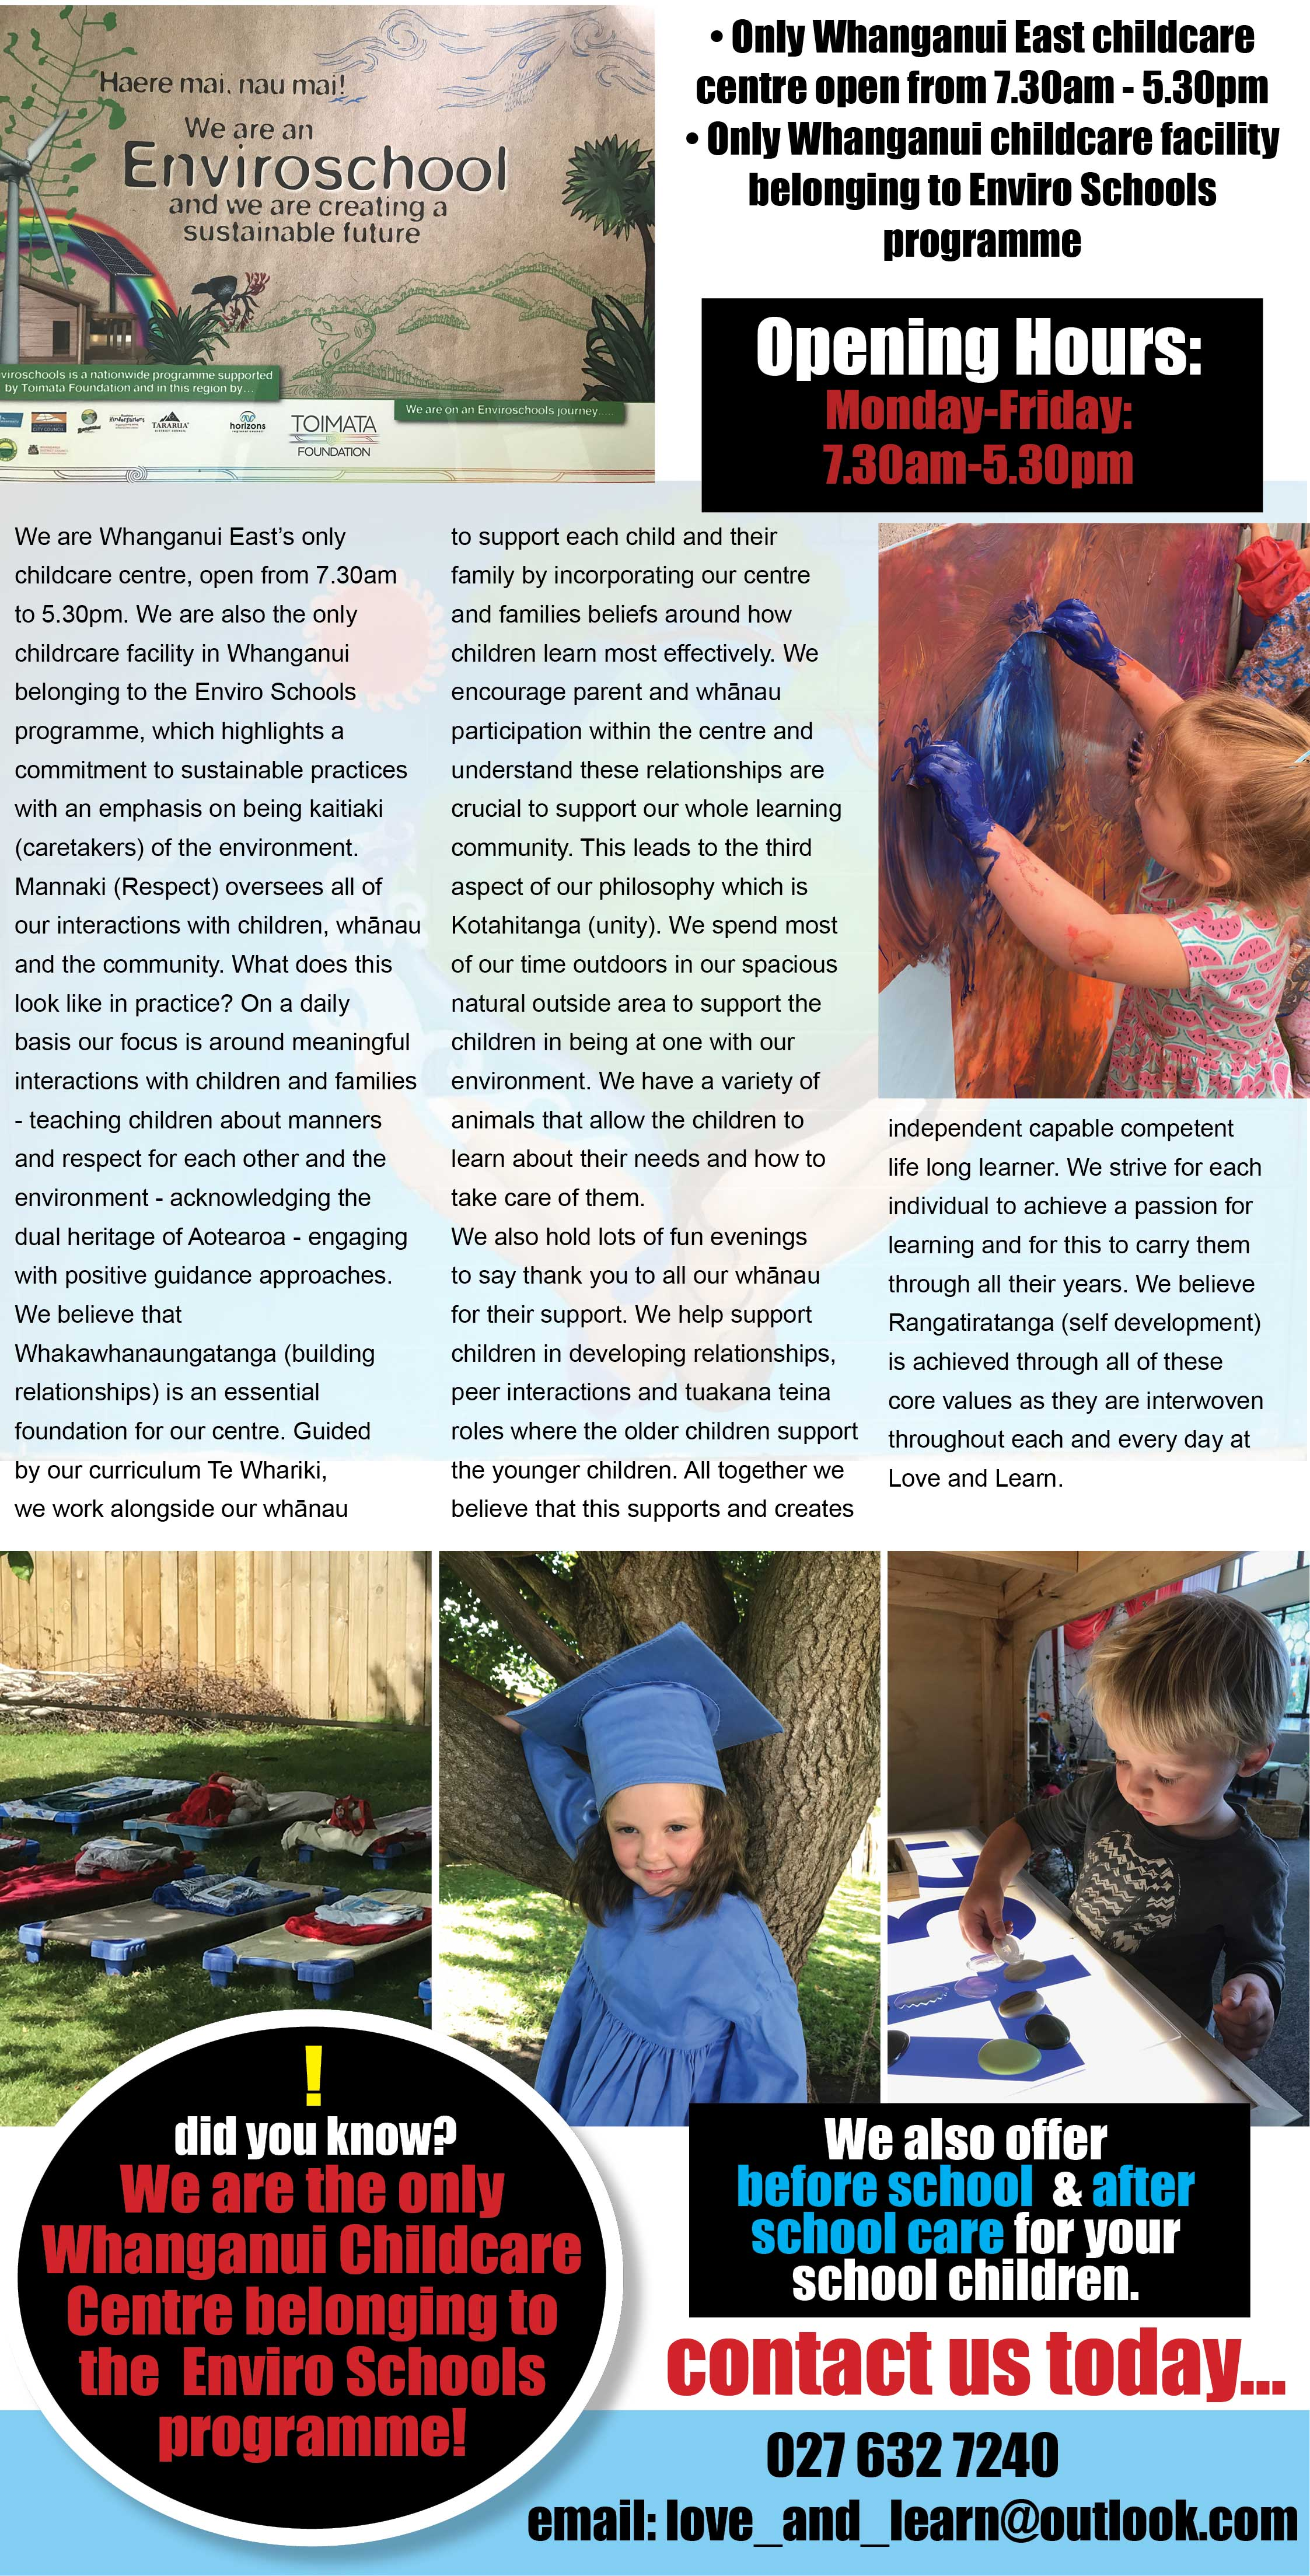 The only Whanganui East childcare centre open from 7.30am-5.30pm and the only Whanganui childcare facility proudly belonging to Enviro Schools programme. Early childhood centres, child care centres, Wanganui childcare centres, Wanganui childcare, Wanganui child care. We are Whanganui East's only childcare centre, open from 7.30am to 5.30pm. We are also the only childrcare facility in Whanganui belonging to the Enviro Schools programme, which highlights a commitment to sustainable practices with an emphasis on being kaitiaki (caretakers) of the environment.